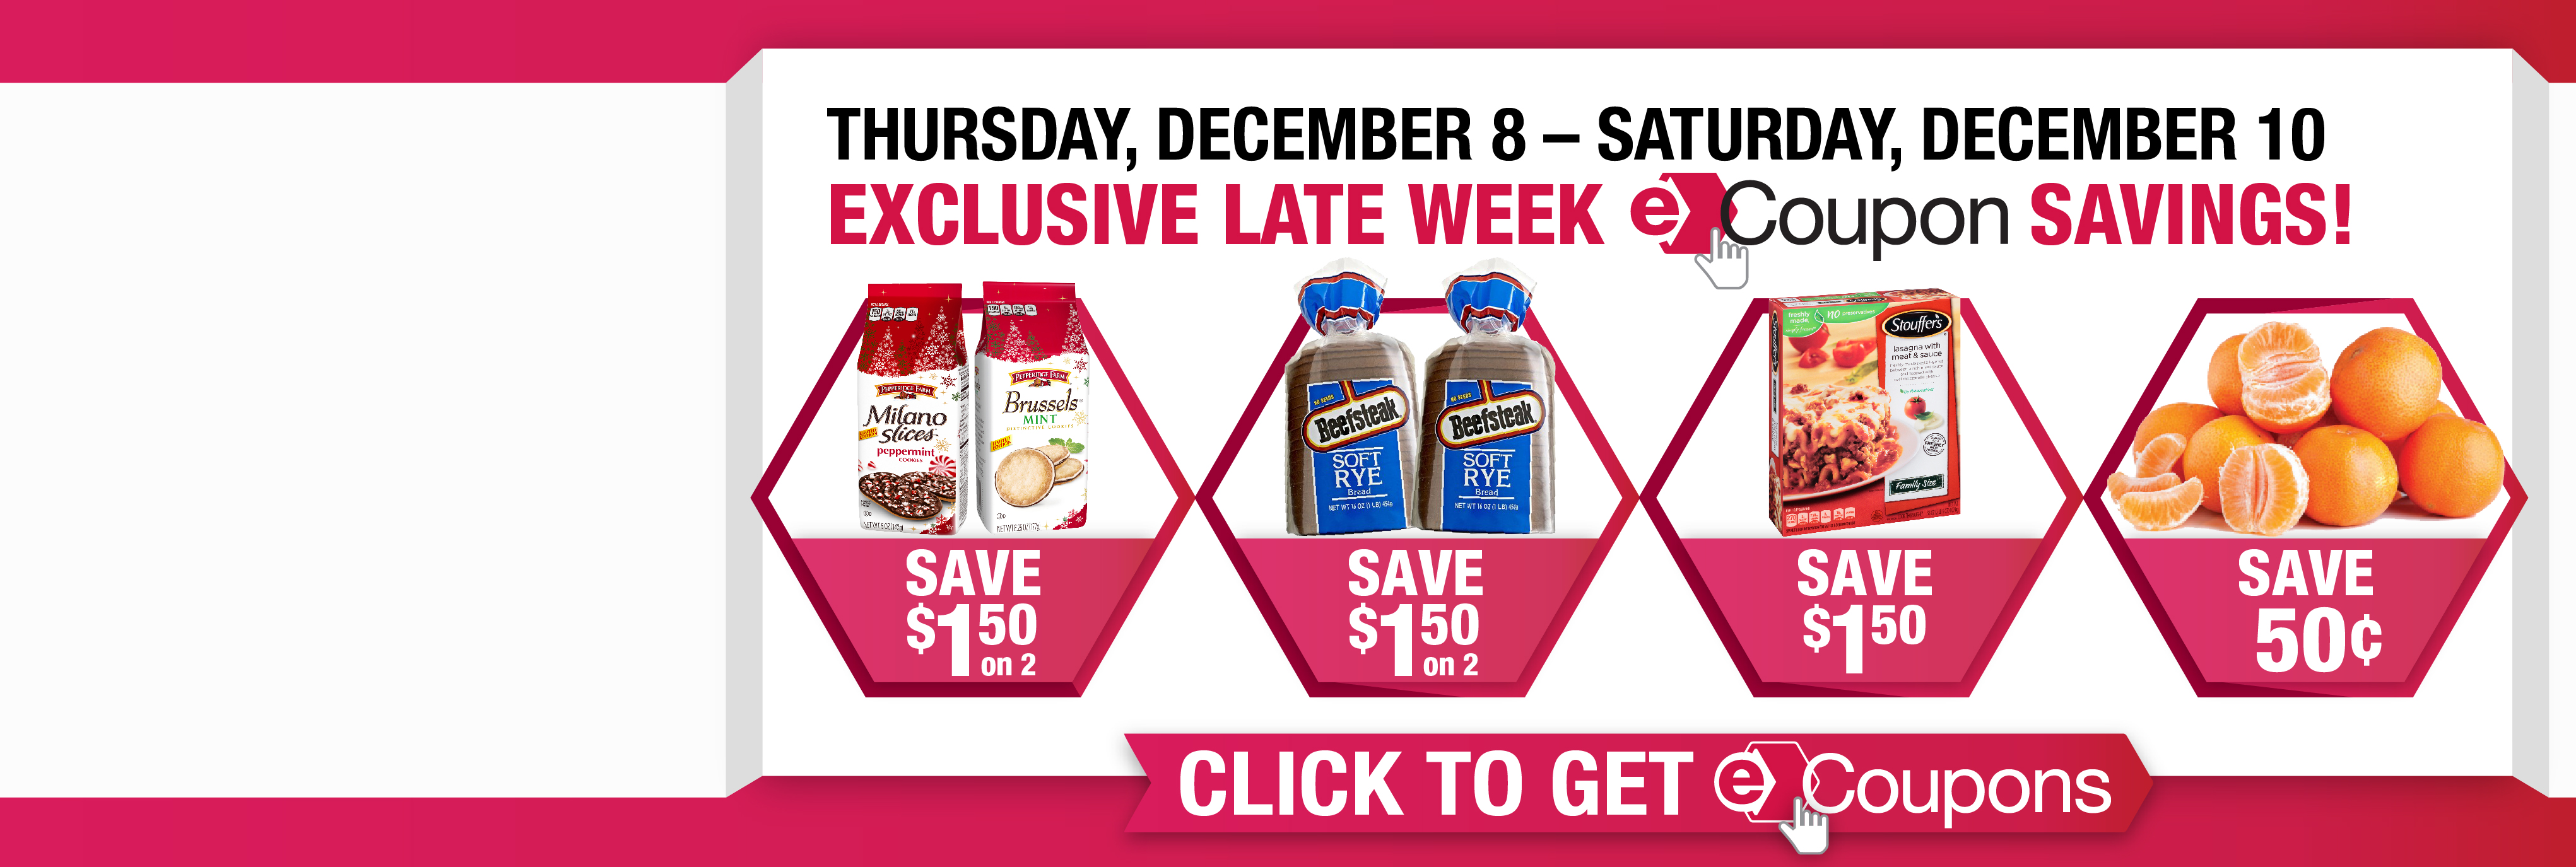 Exclusive Late Week eCoupon Savings